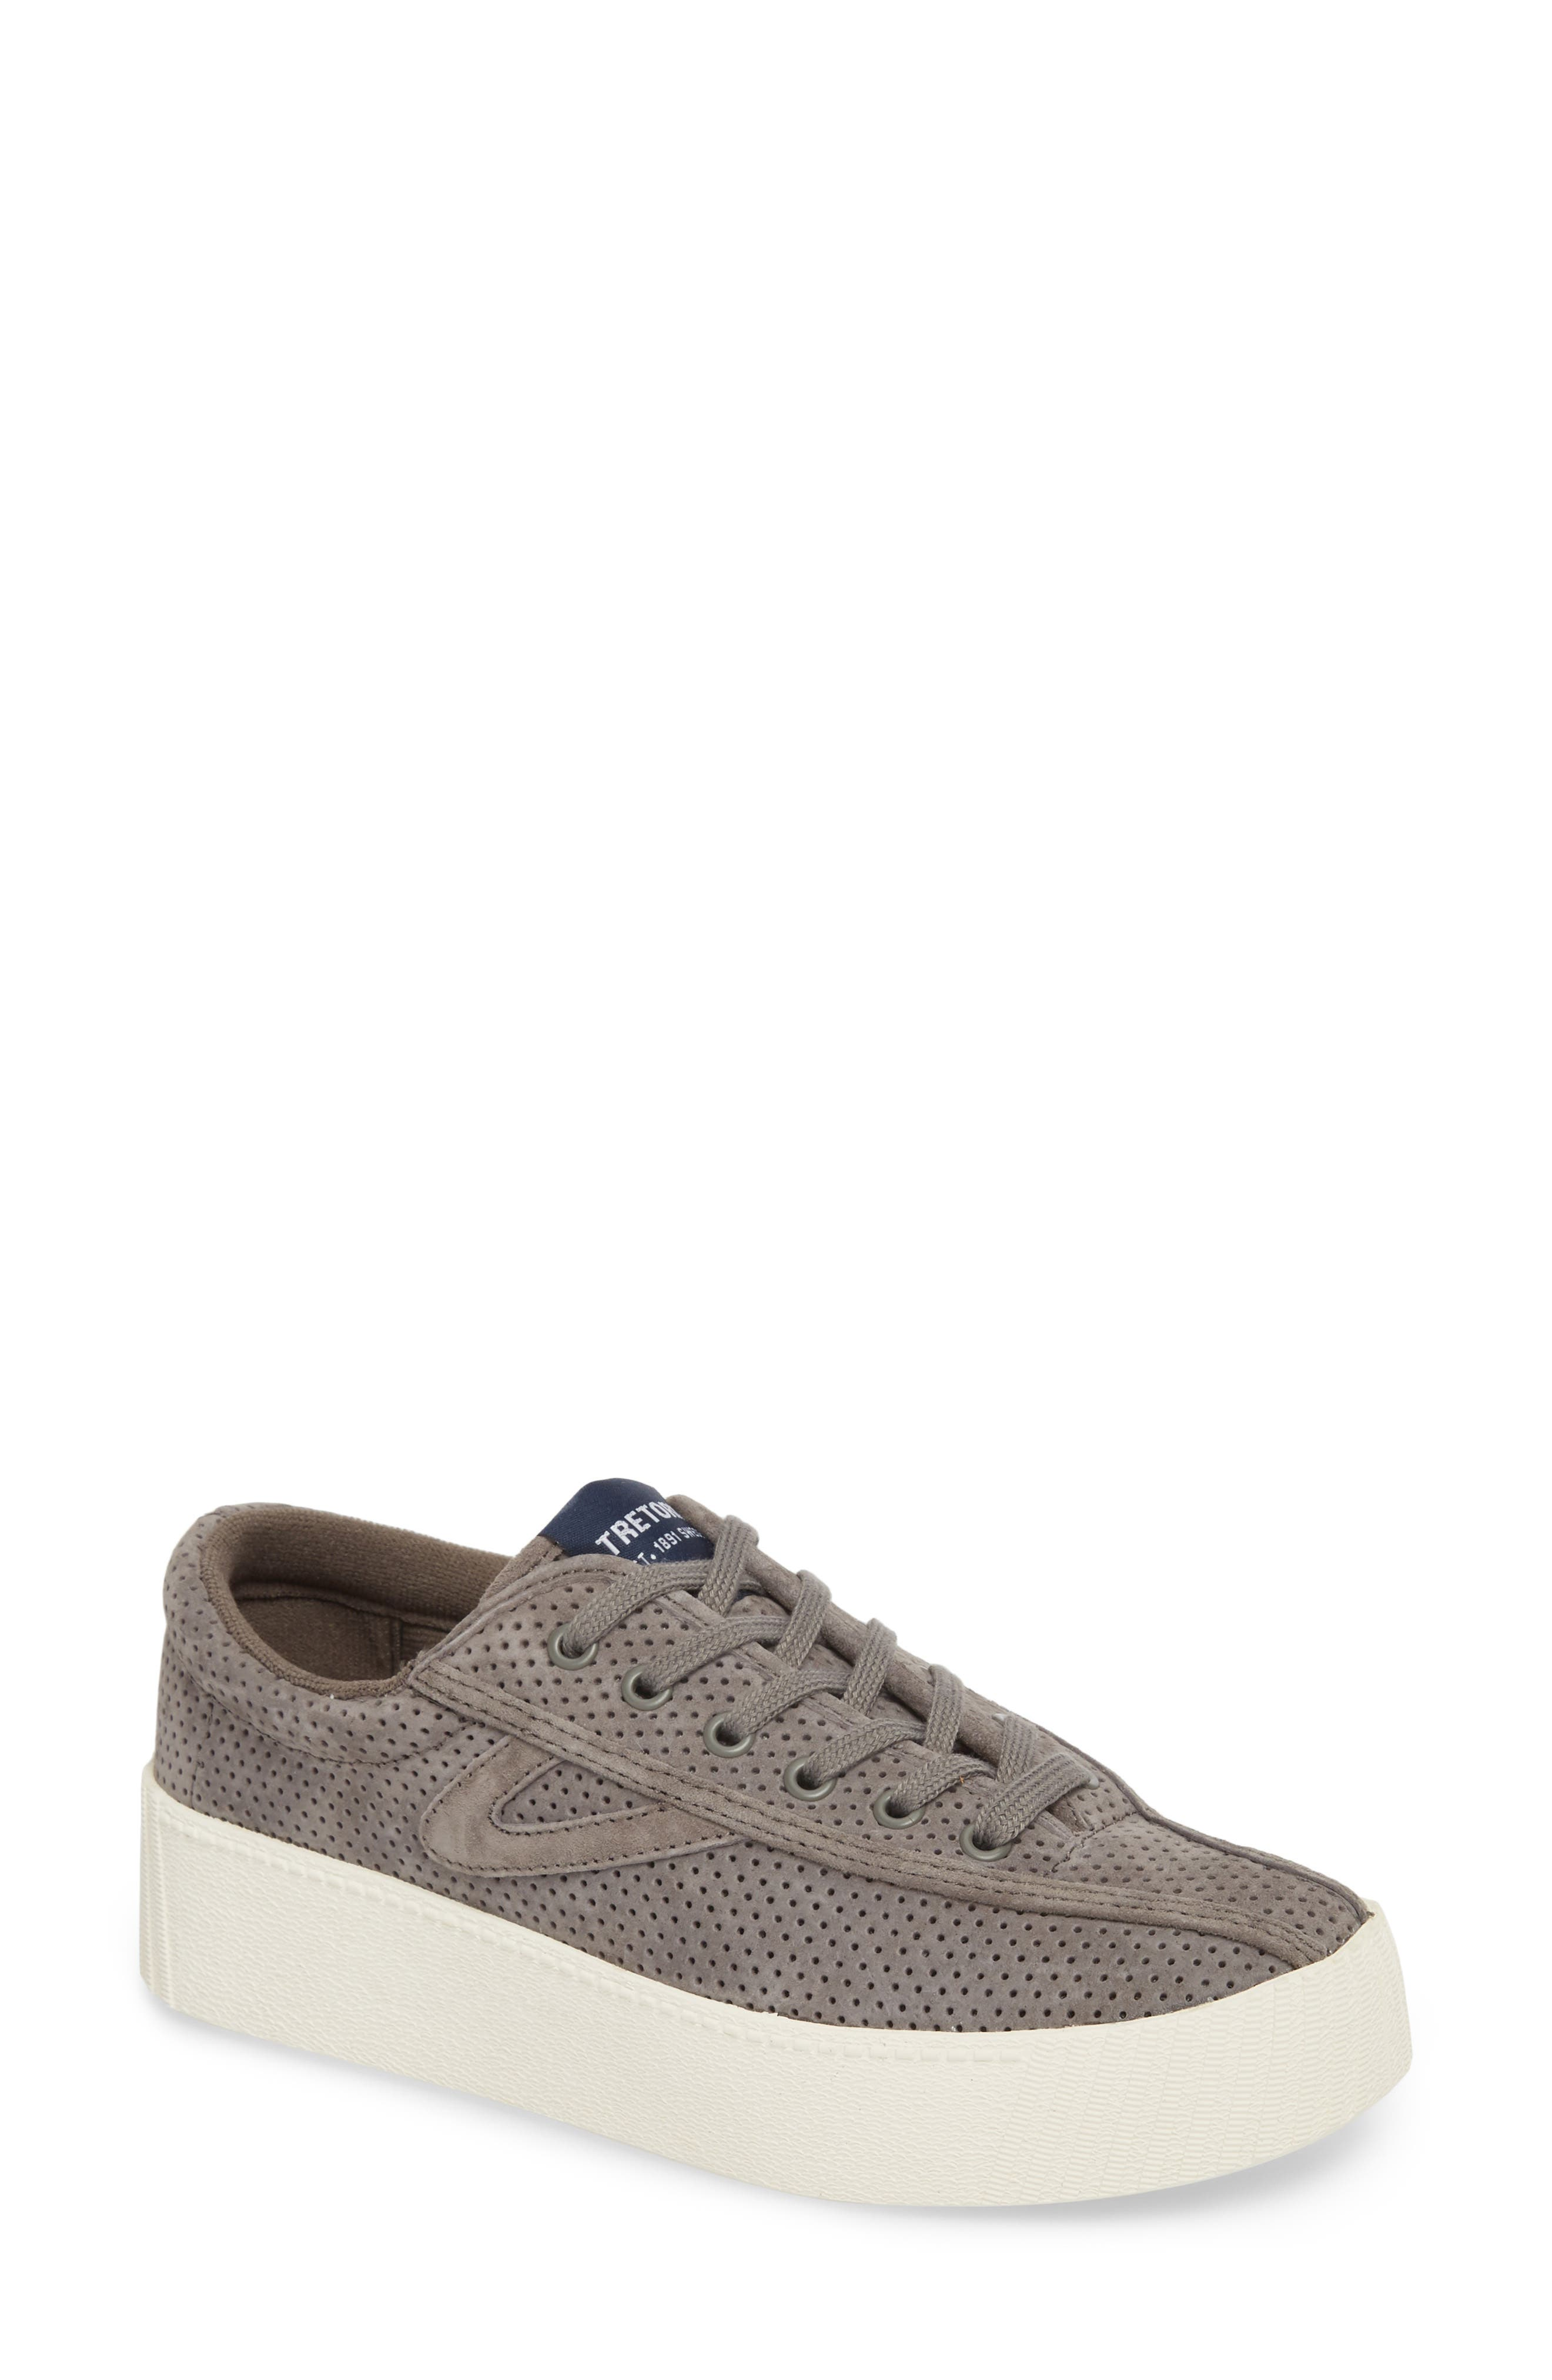 Women'S Nylite Bold Perforated Nubuck Leather Lace Up Platform Sneakers in Graphite/ Graphite